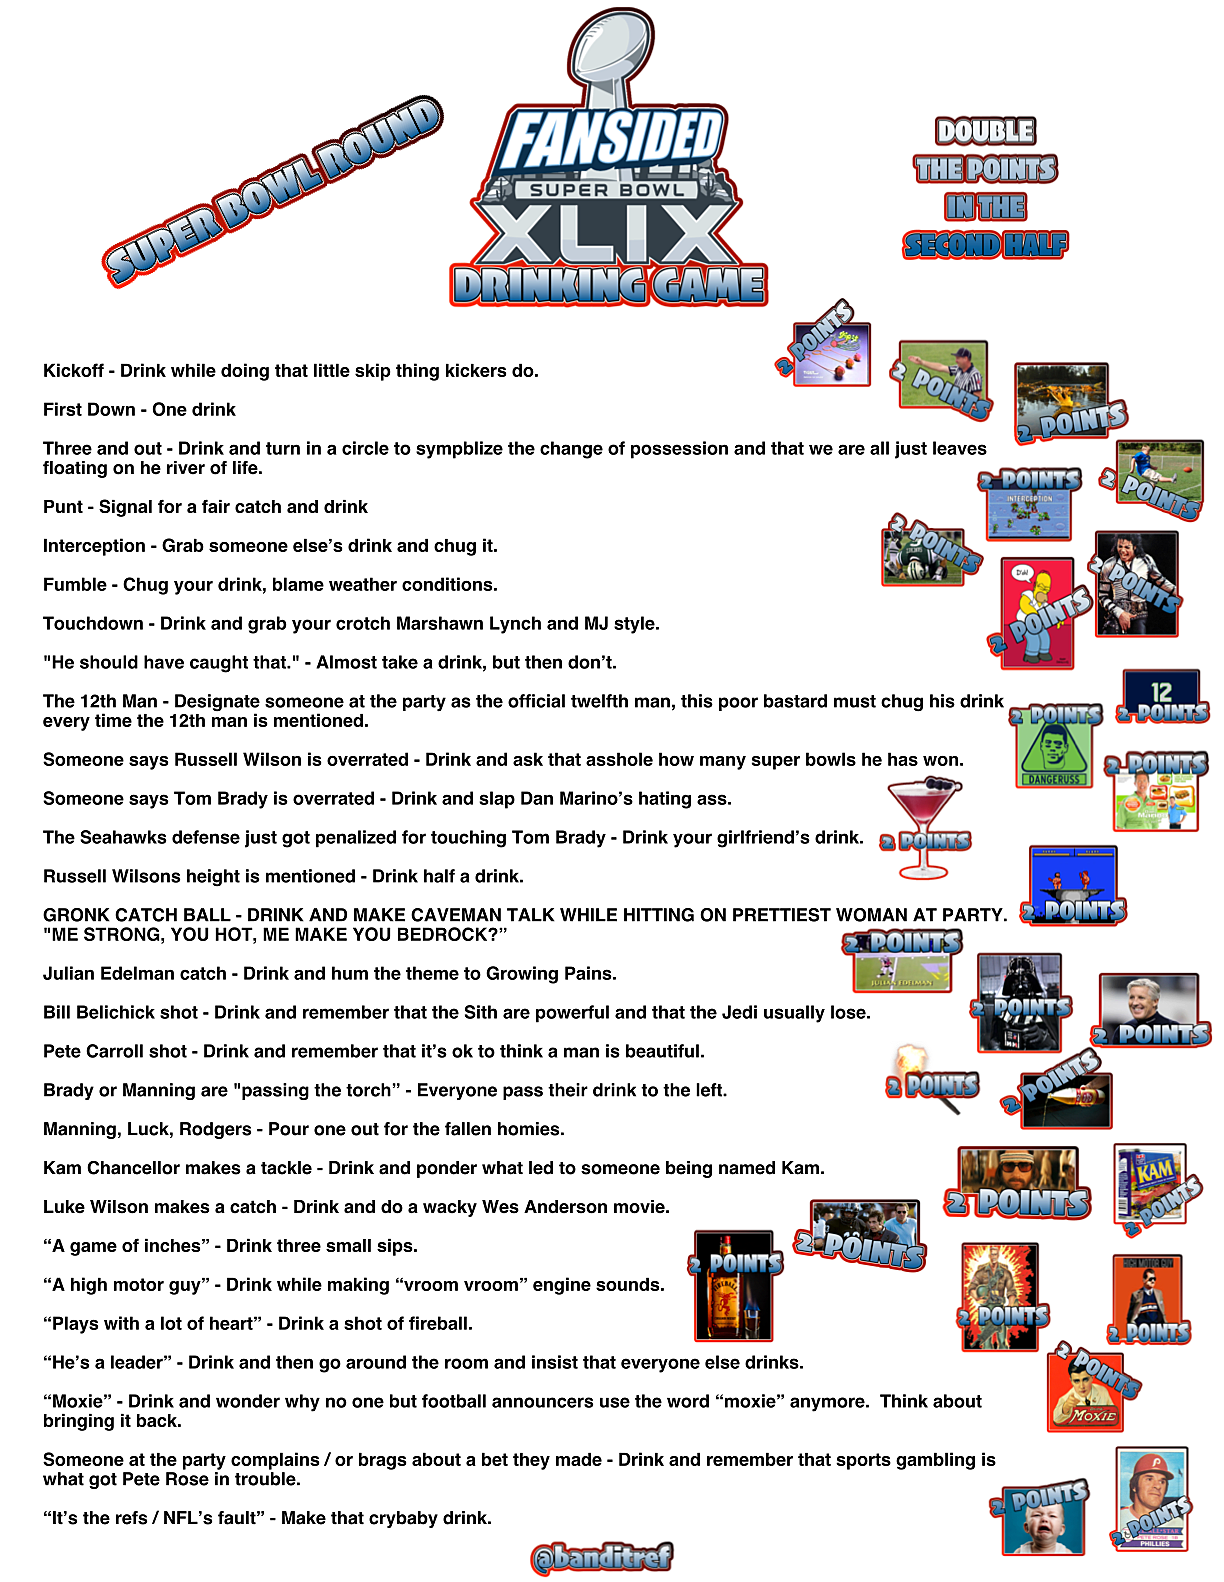 Super Bowl 49 drinking game for Seahawks vs  Patriots